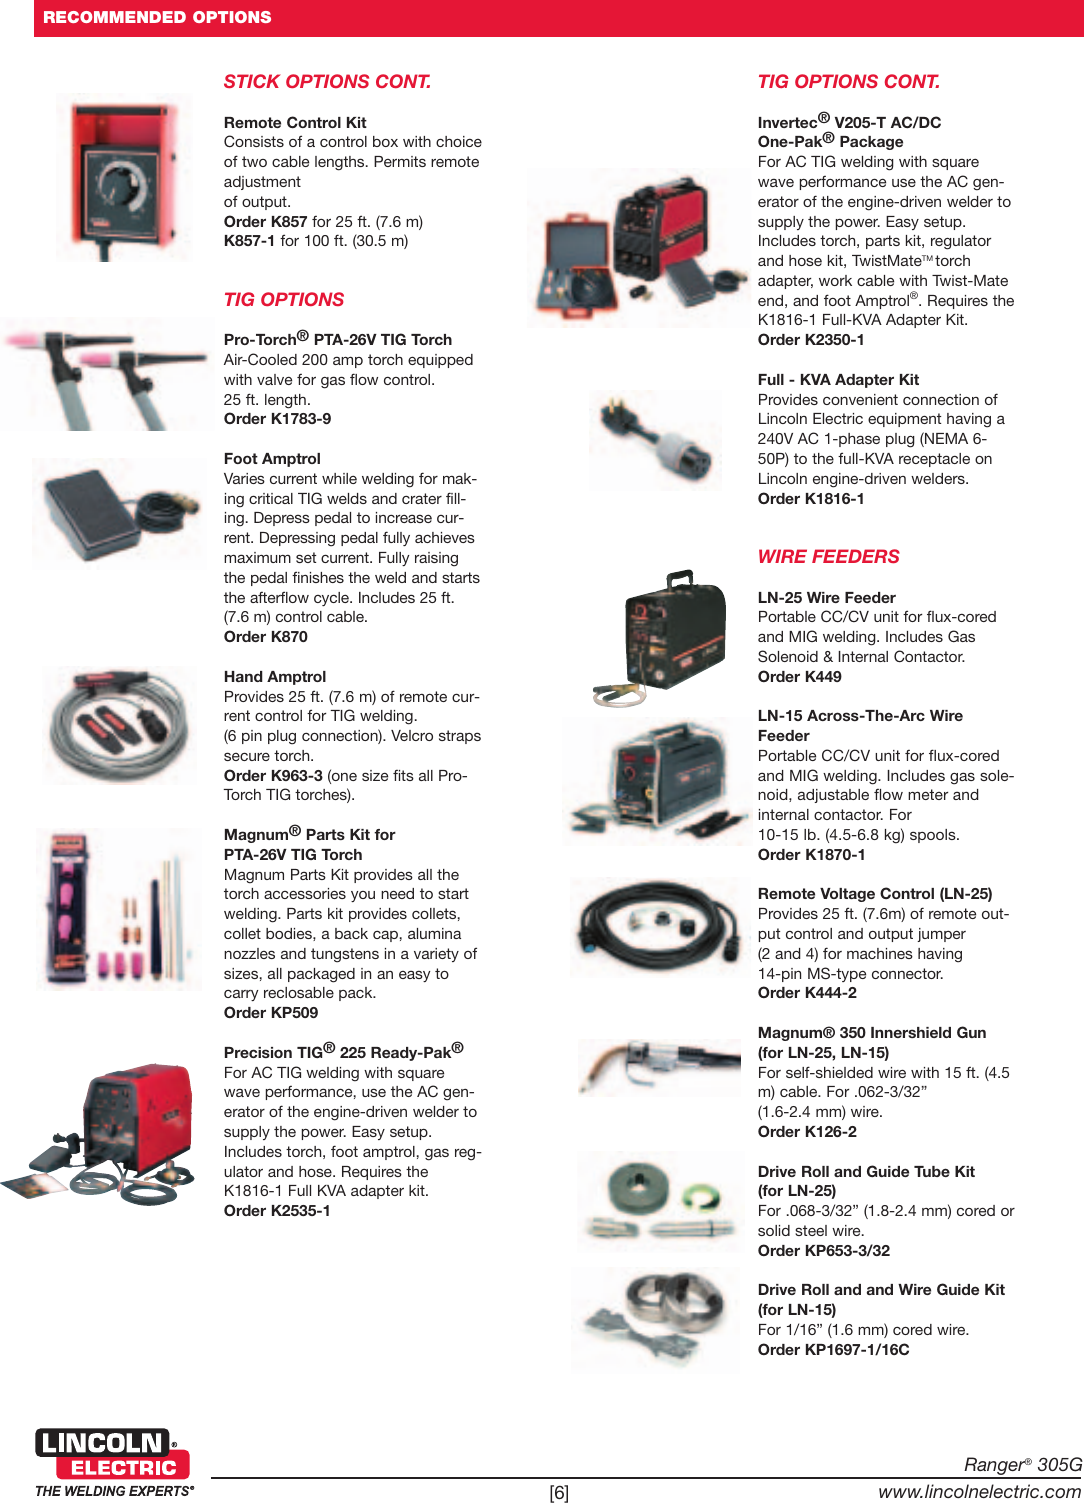 lincoln electric ranger 305g users manual engine driven welders on  lincoln 225 arc welder schematic,